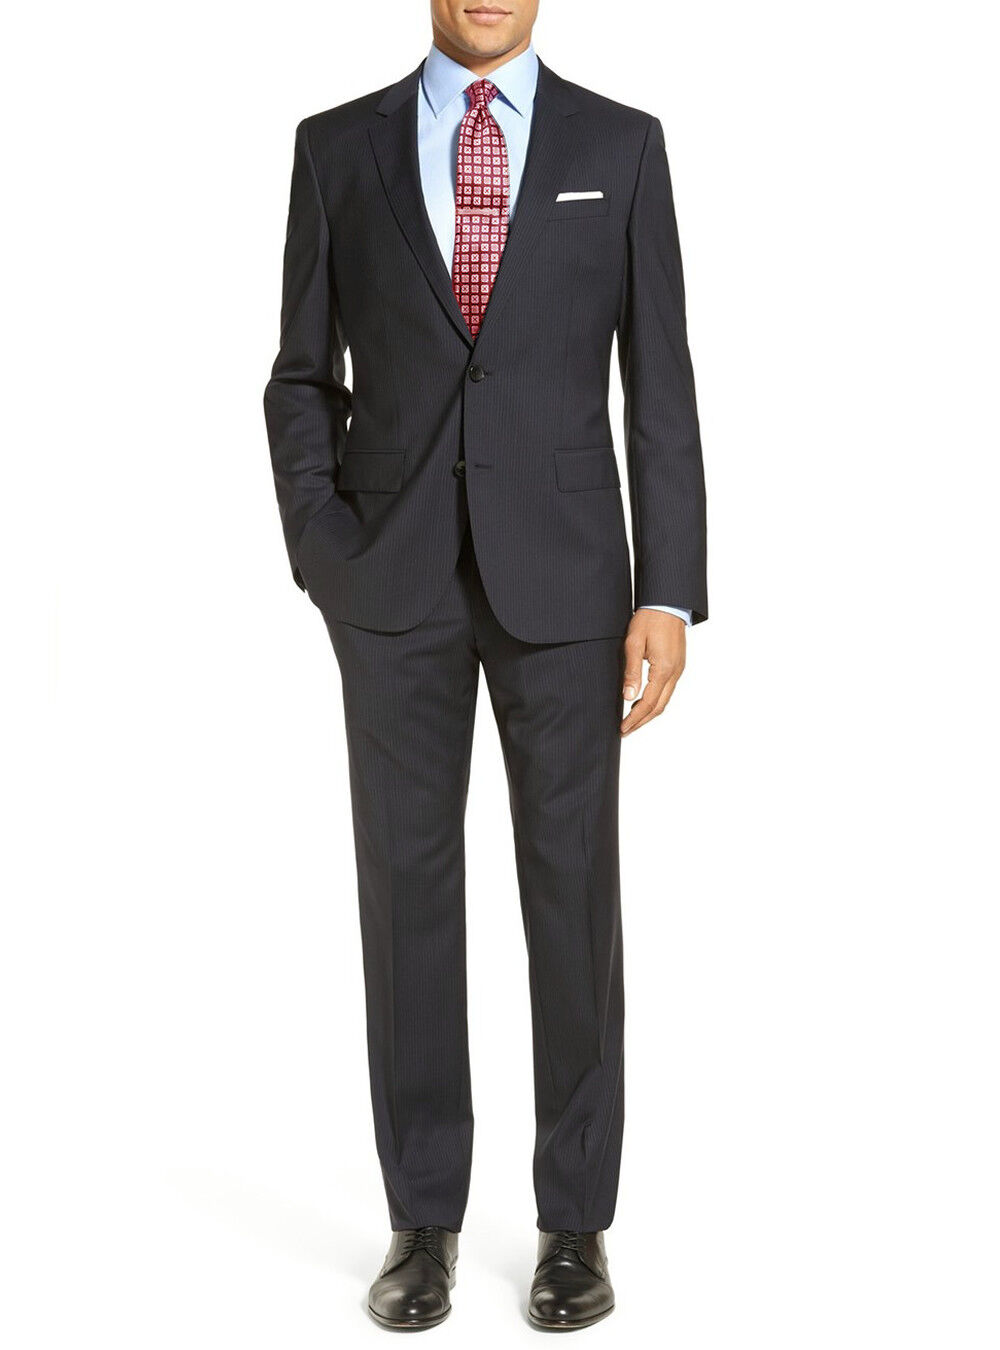 LN LUCIANO NATAZZI Two Piece Mens Button Suit Modern Fit Narrow